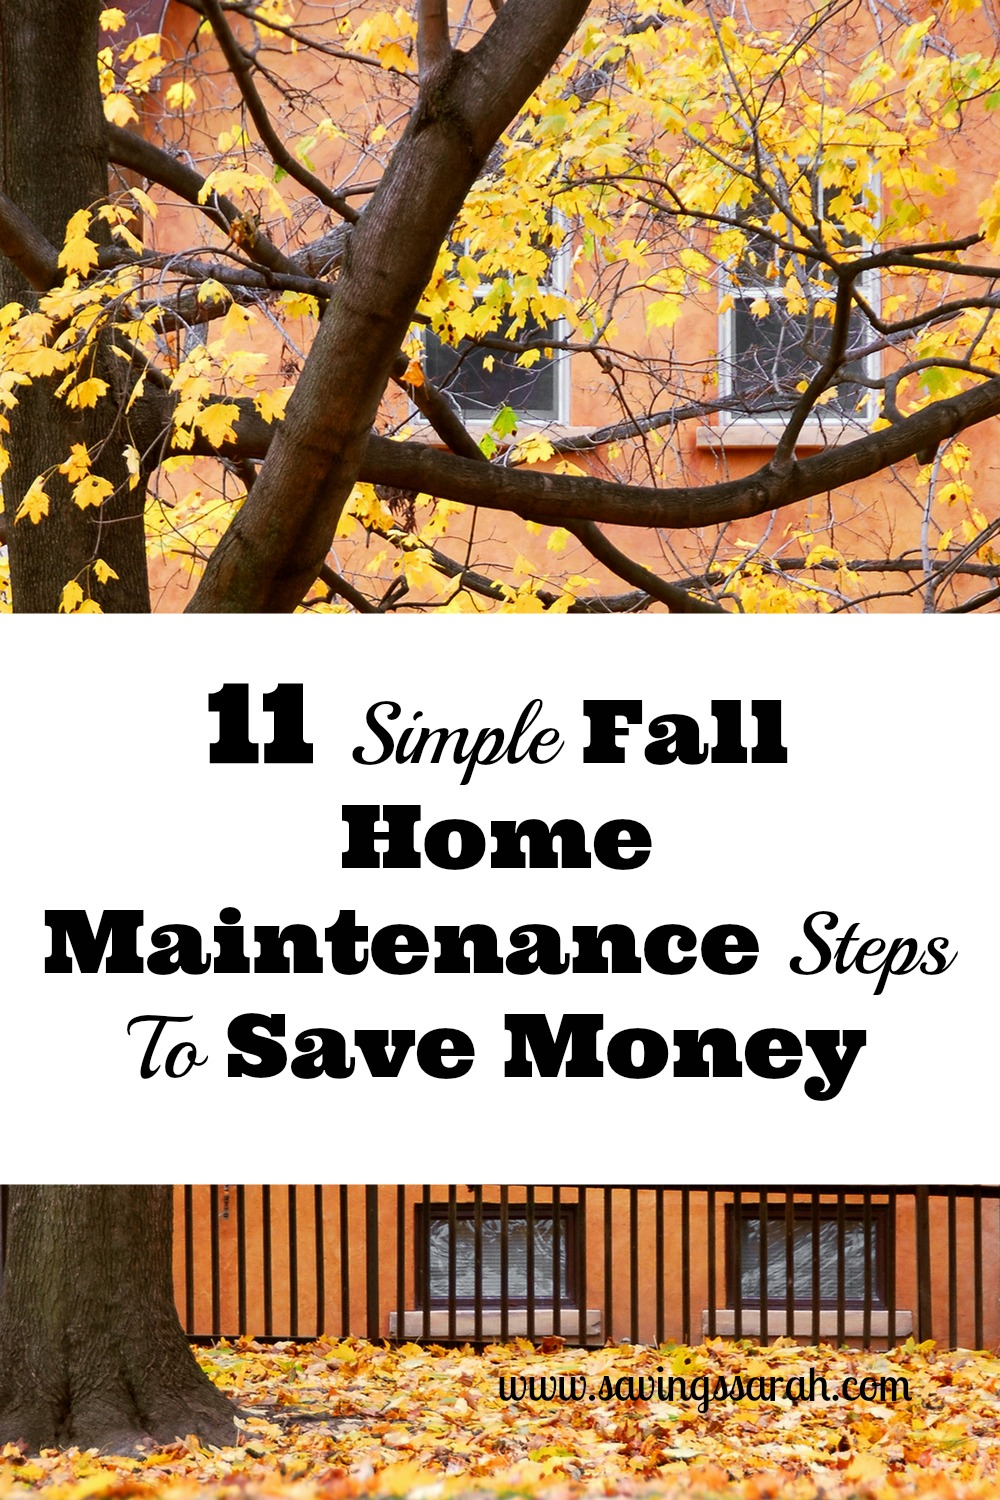 Simple Fall Wreath: 11 Simple Fall Home Maintenance Steps To Save Money